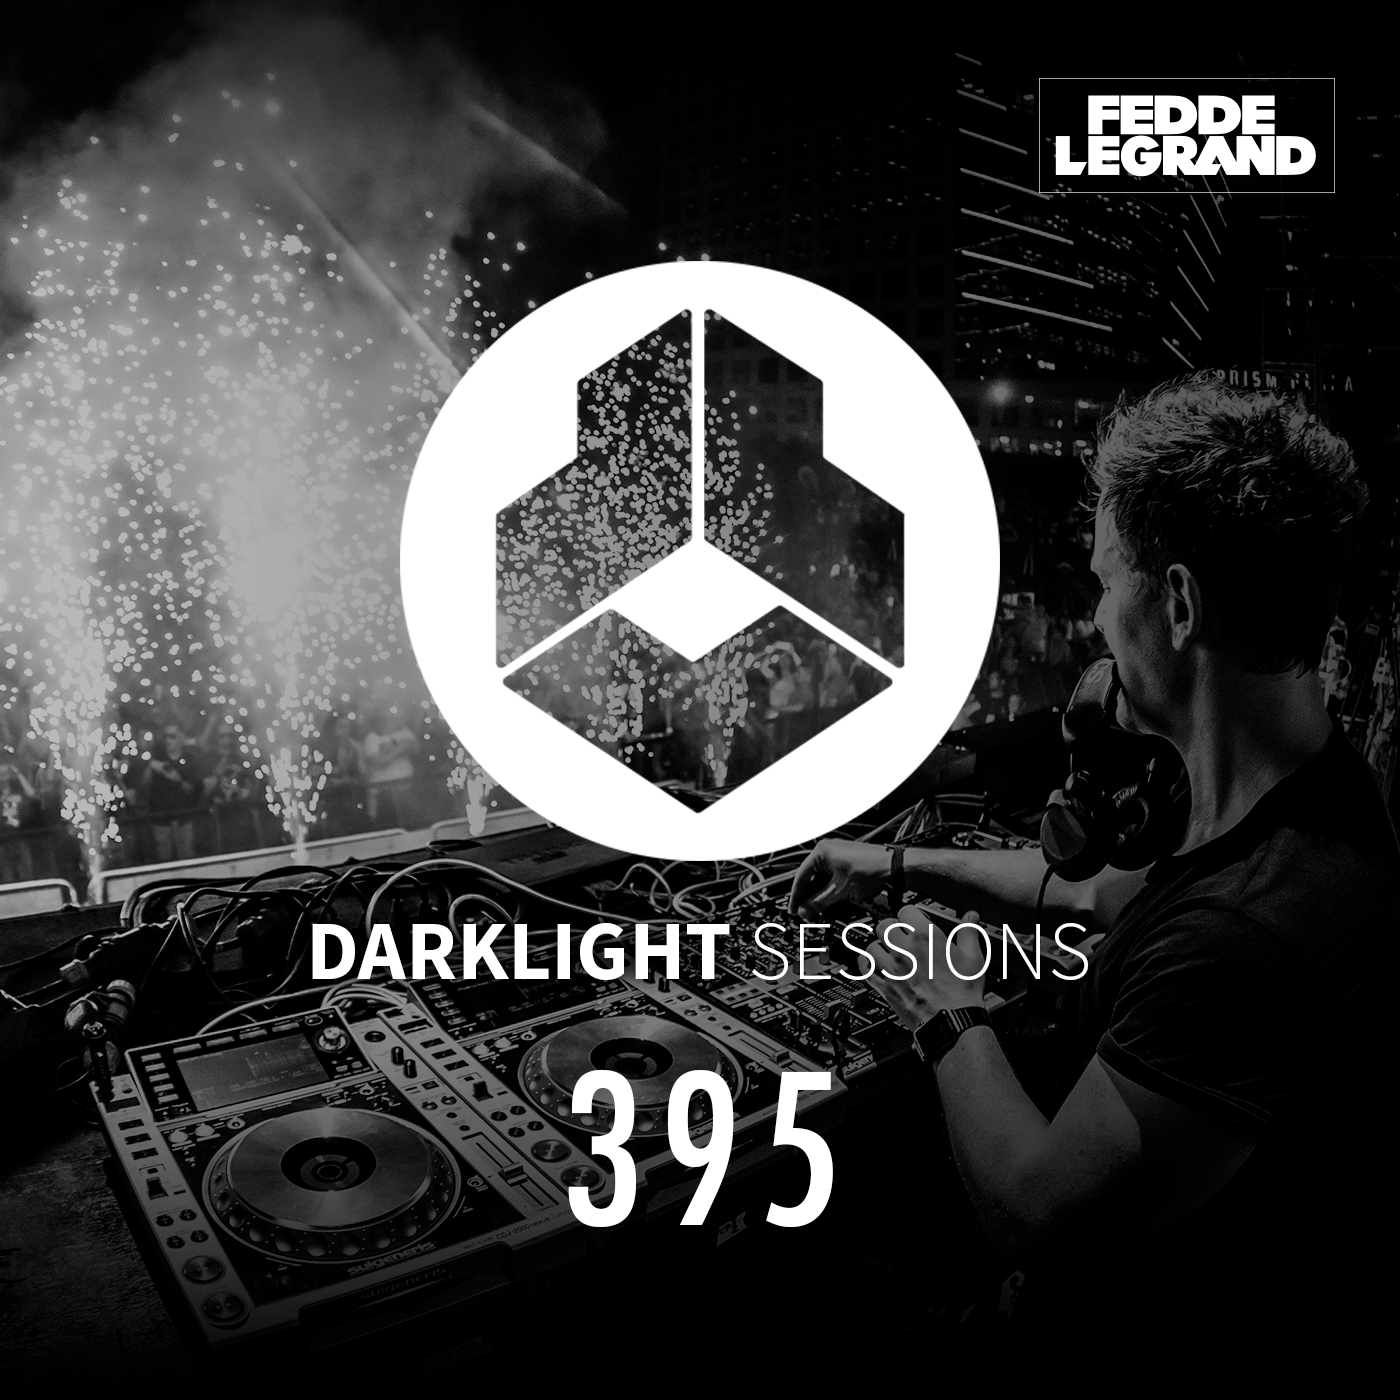 Darklight Sessions 395